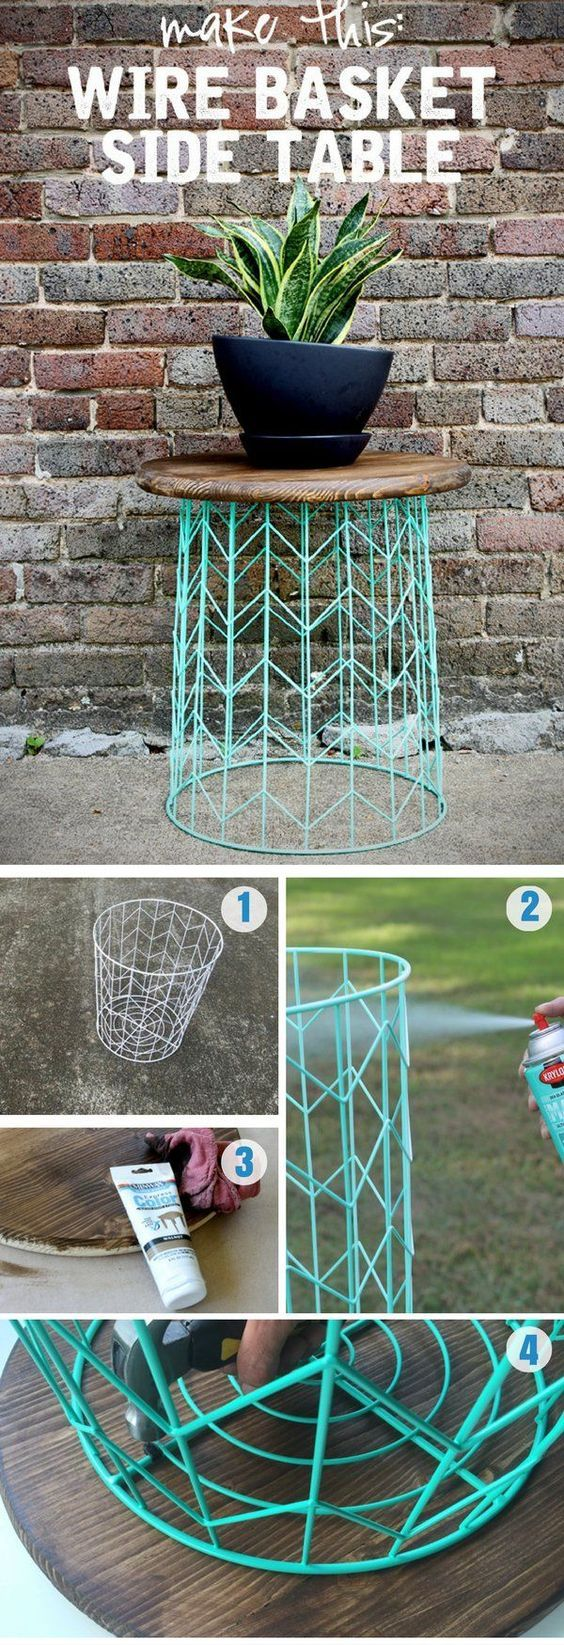 Love the idea for a simple DIY wire basket side table @Industry Standard Design